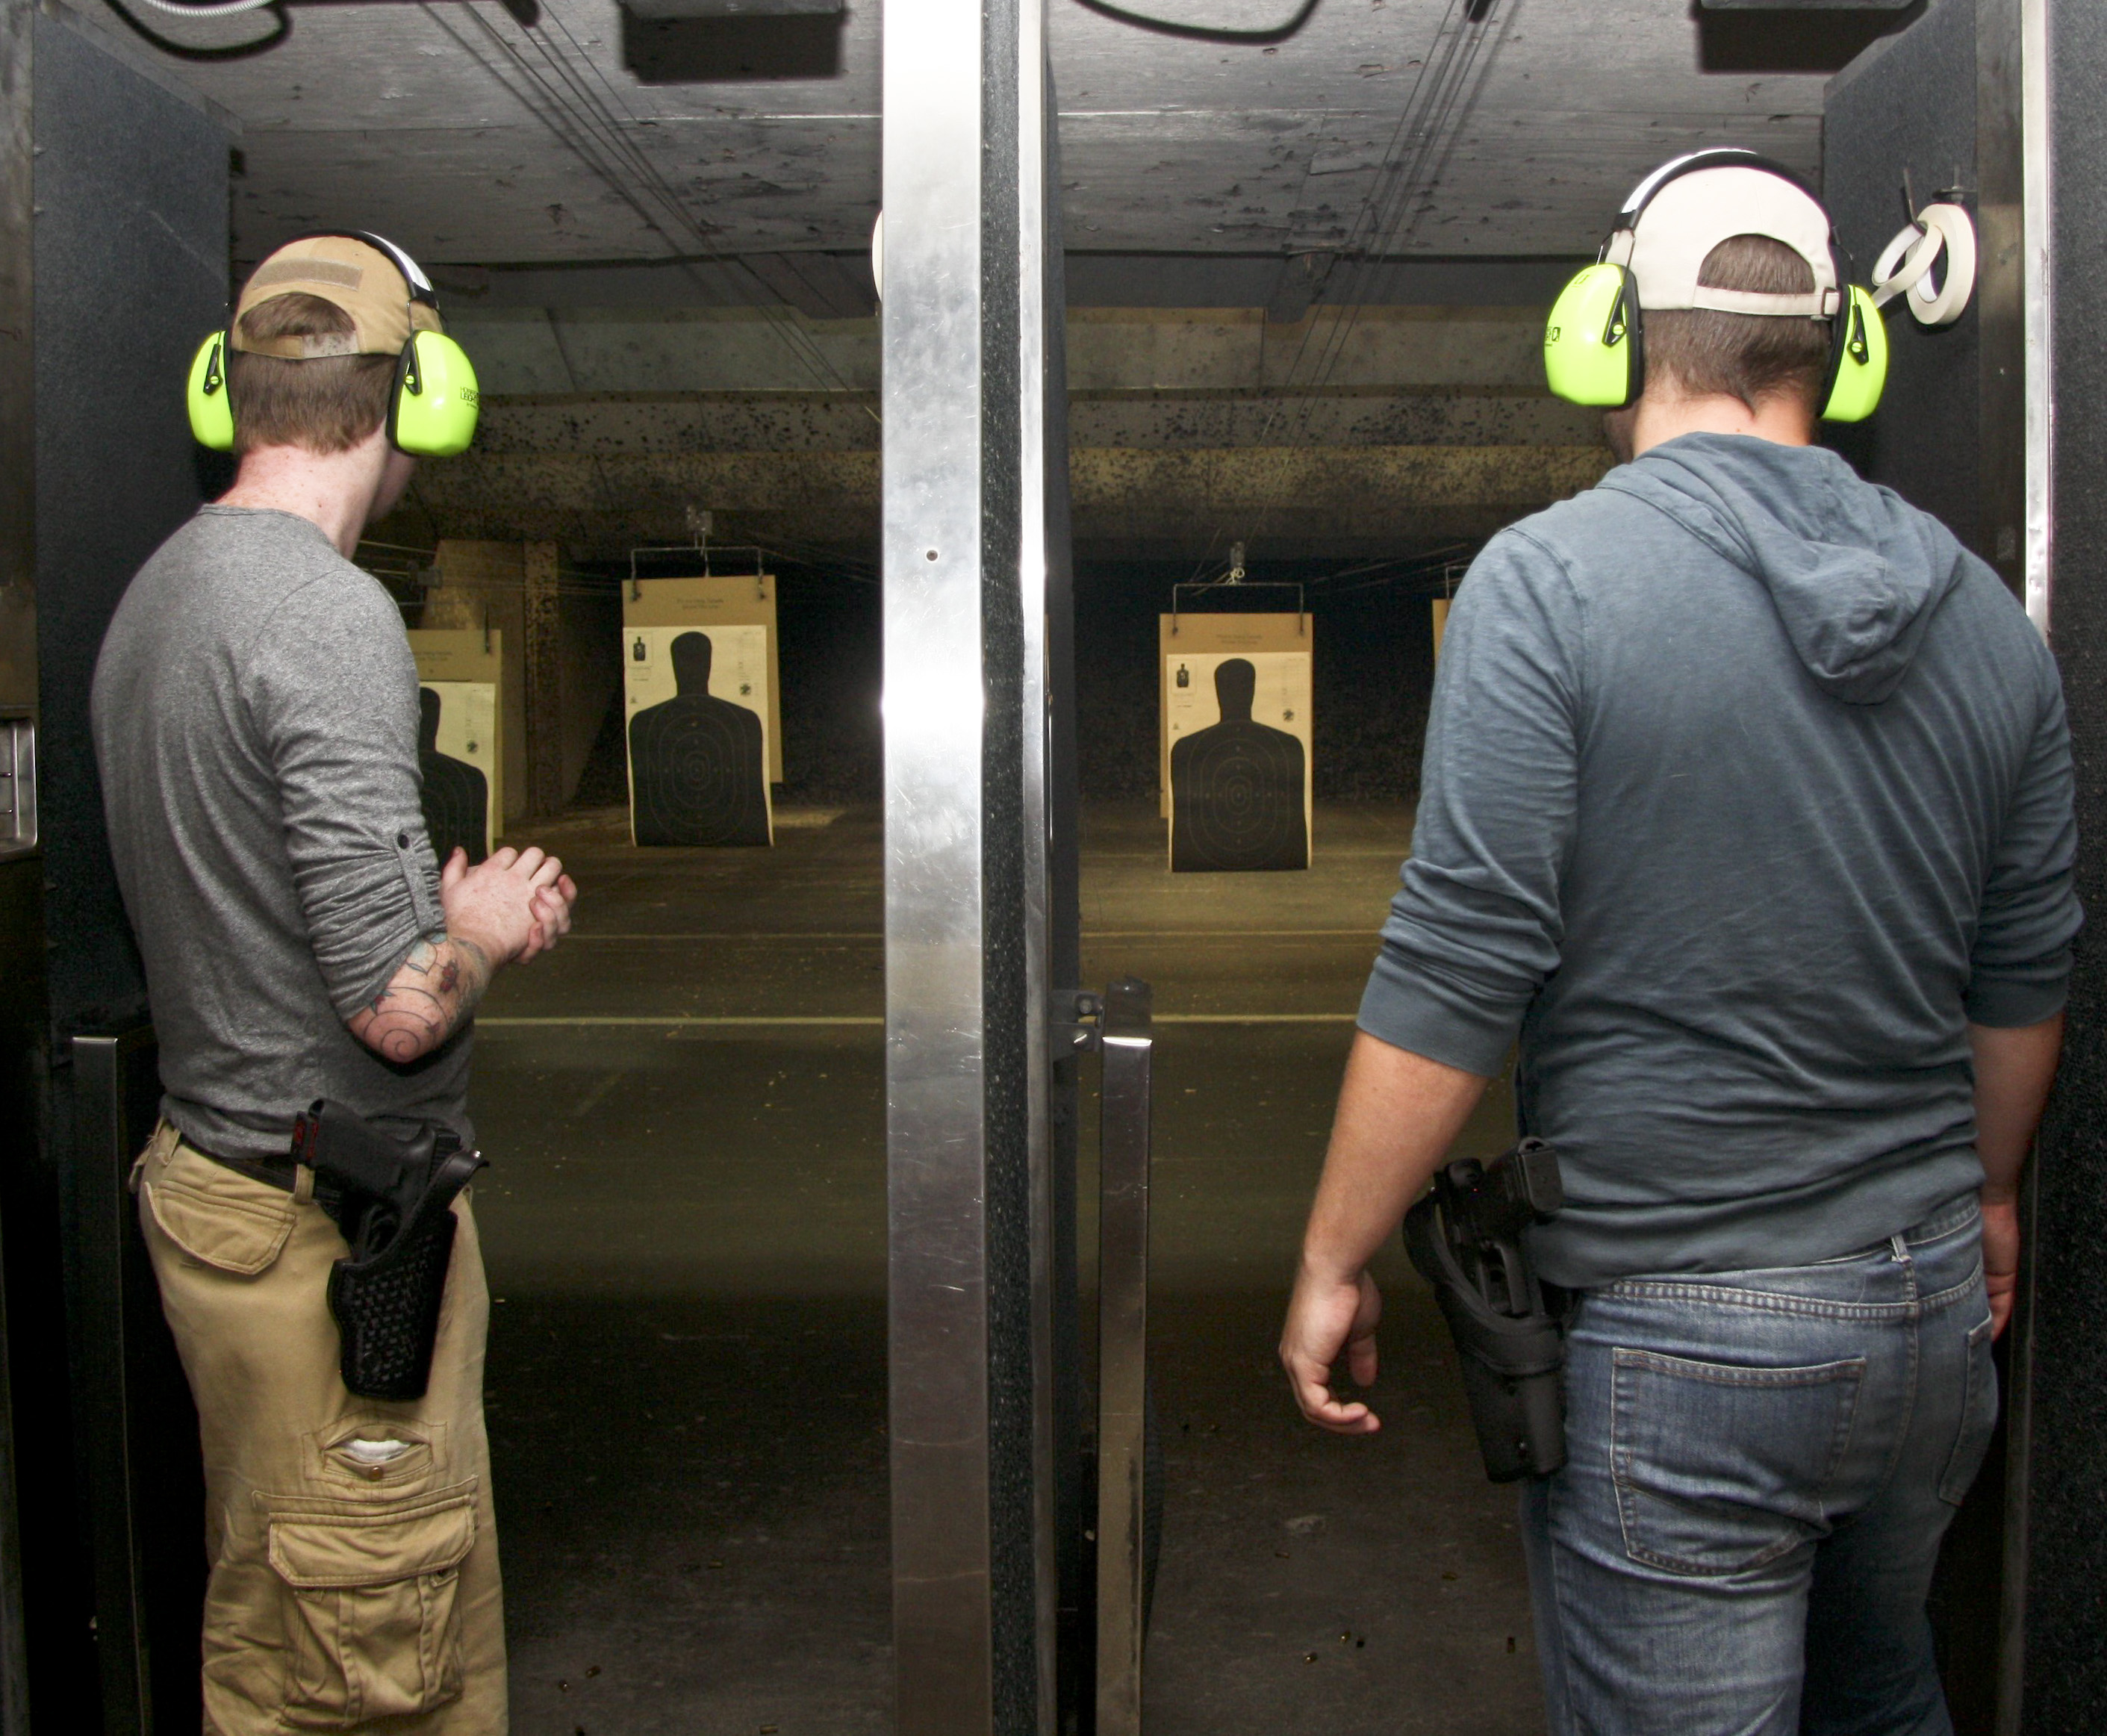 Armed Security Training